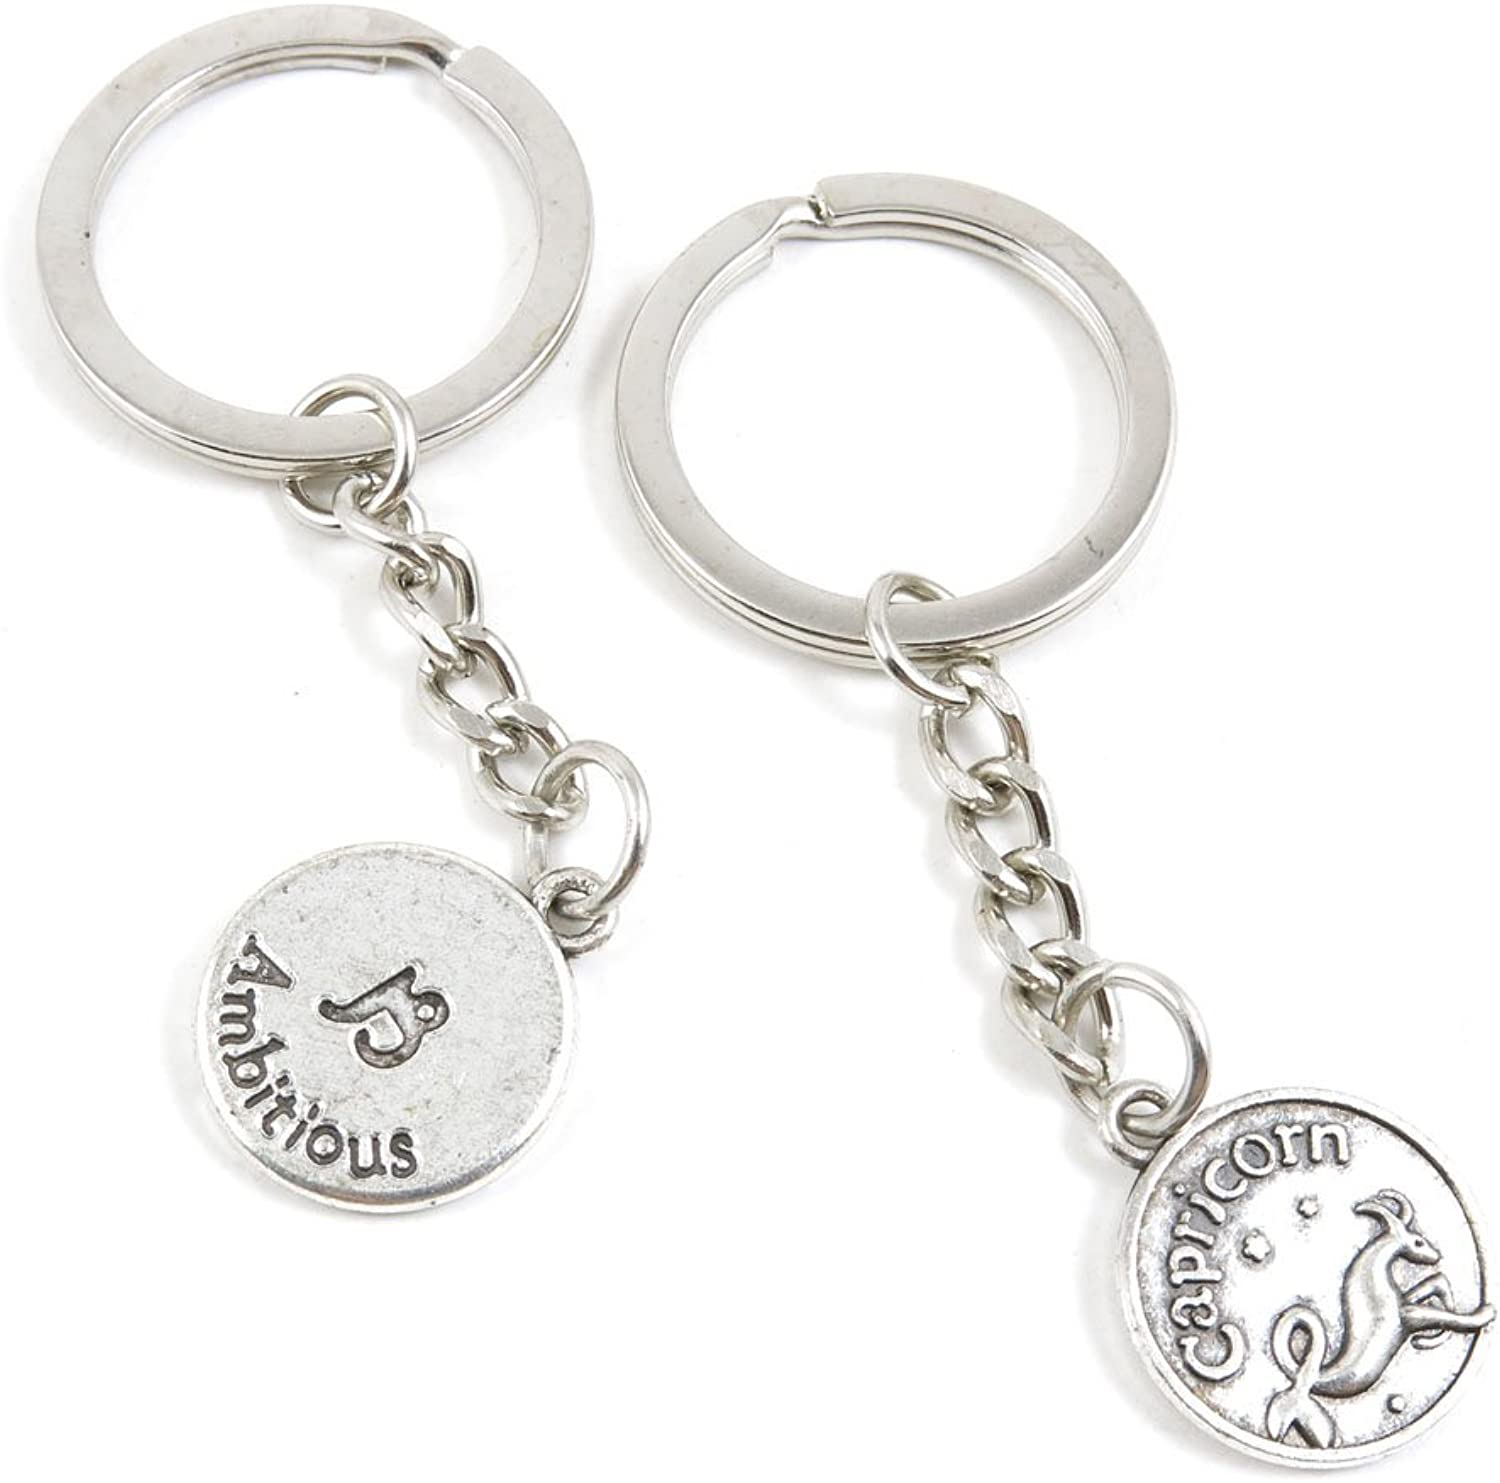 100 Pieces Keychain Keyring Door Car Key Chain Ring Tag Charms Bulk Supply Jewelry Making Clasp Findings O7JW4U Capricorn